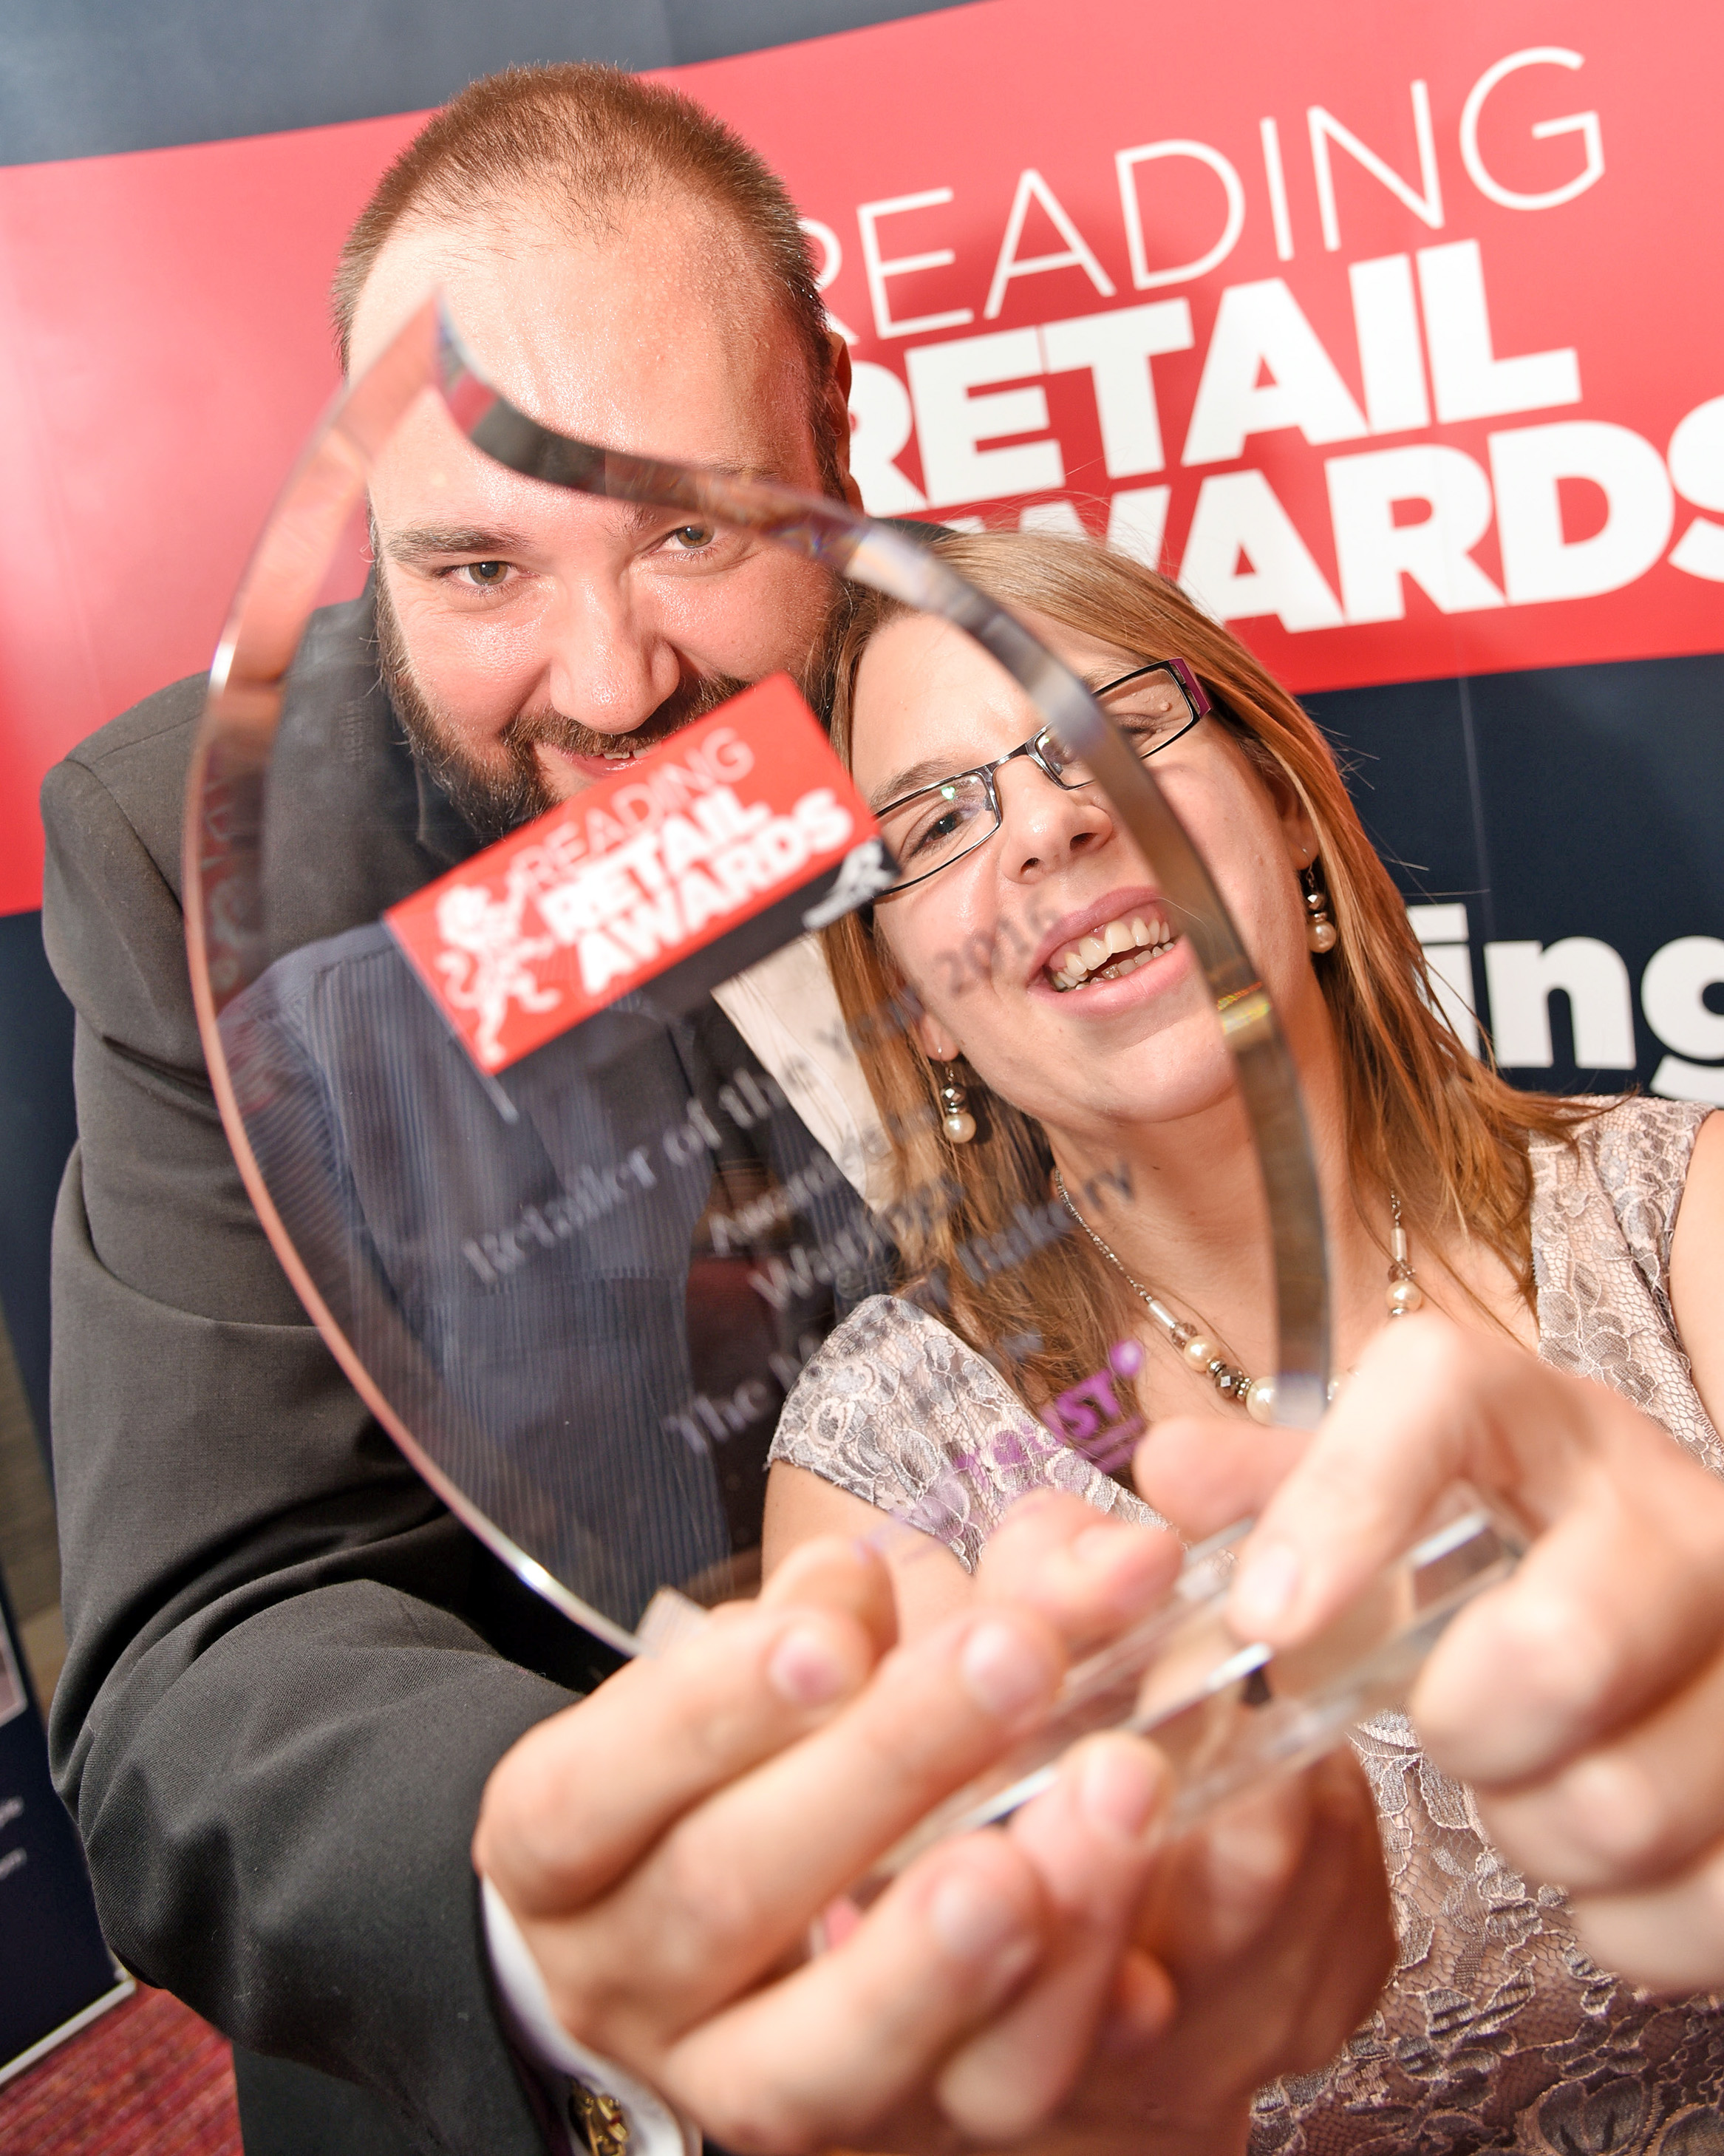 Dan and Vicky Carr celebrate Warings Bakery's win at the Reading Retail Awards. Picture: Mike Swift